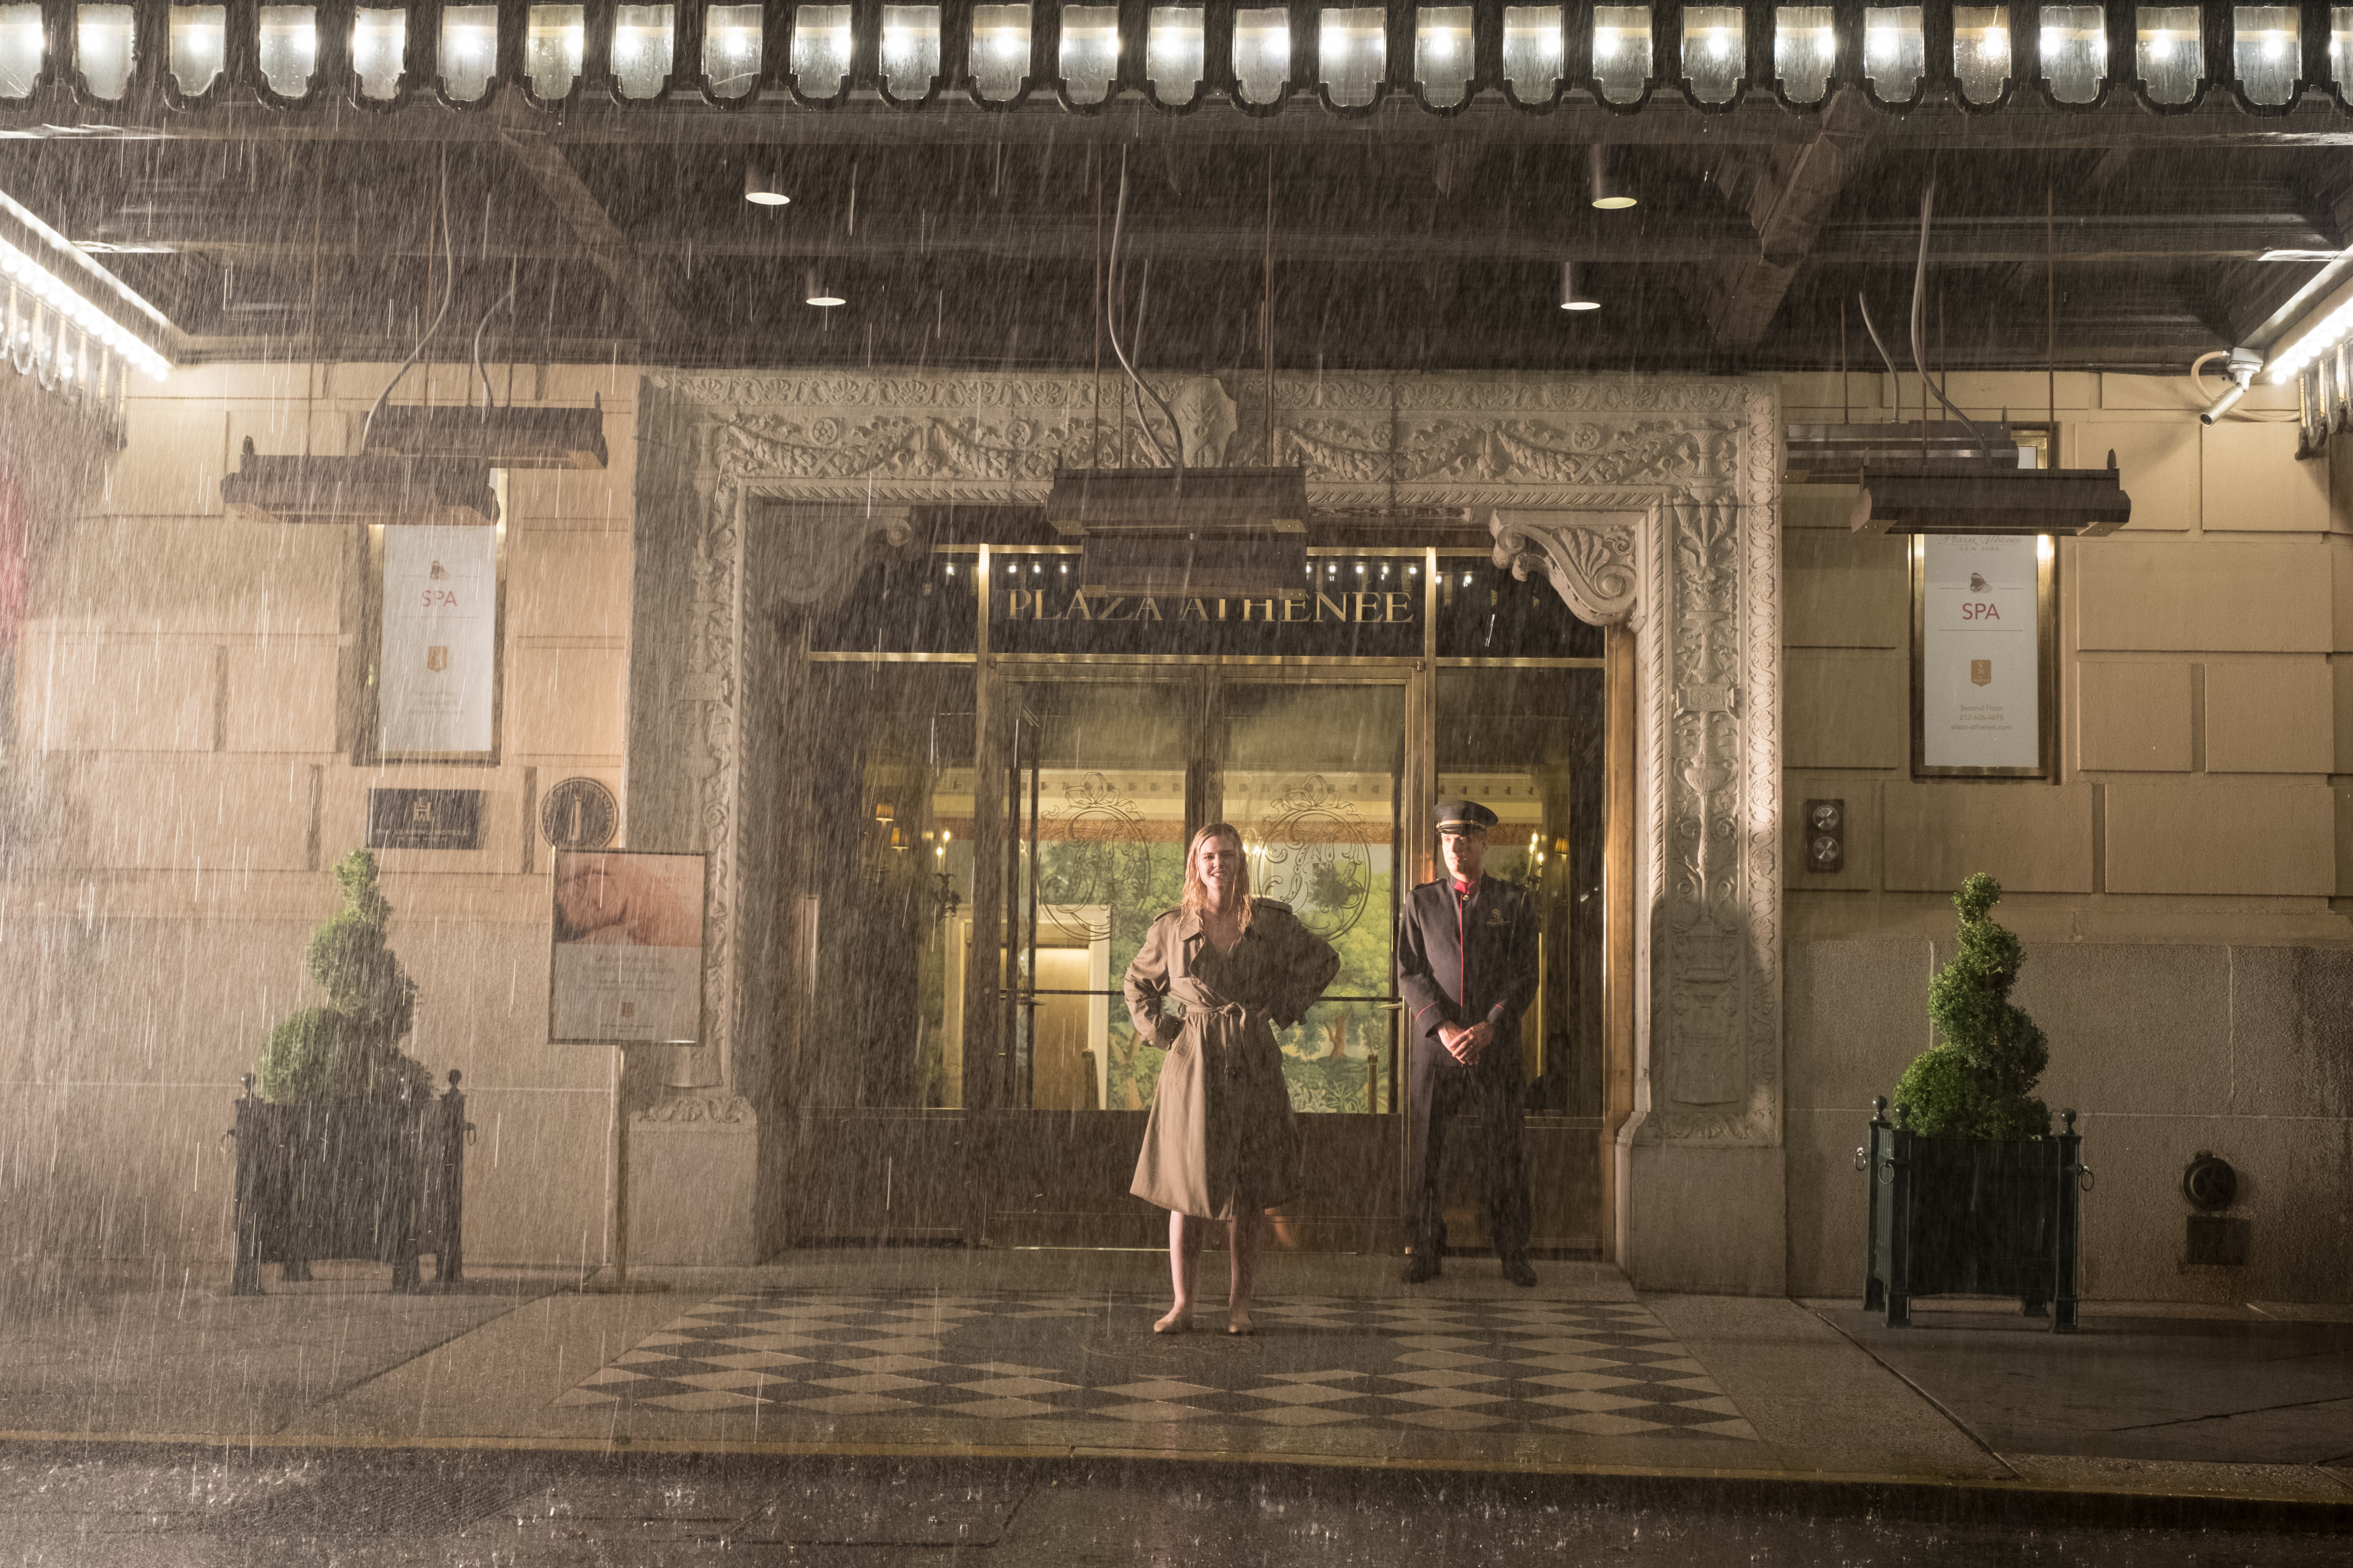 A rainy Day in New York: Scene Image 11